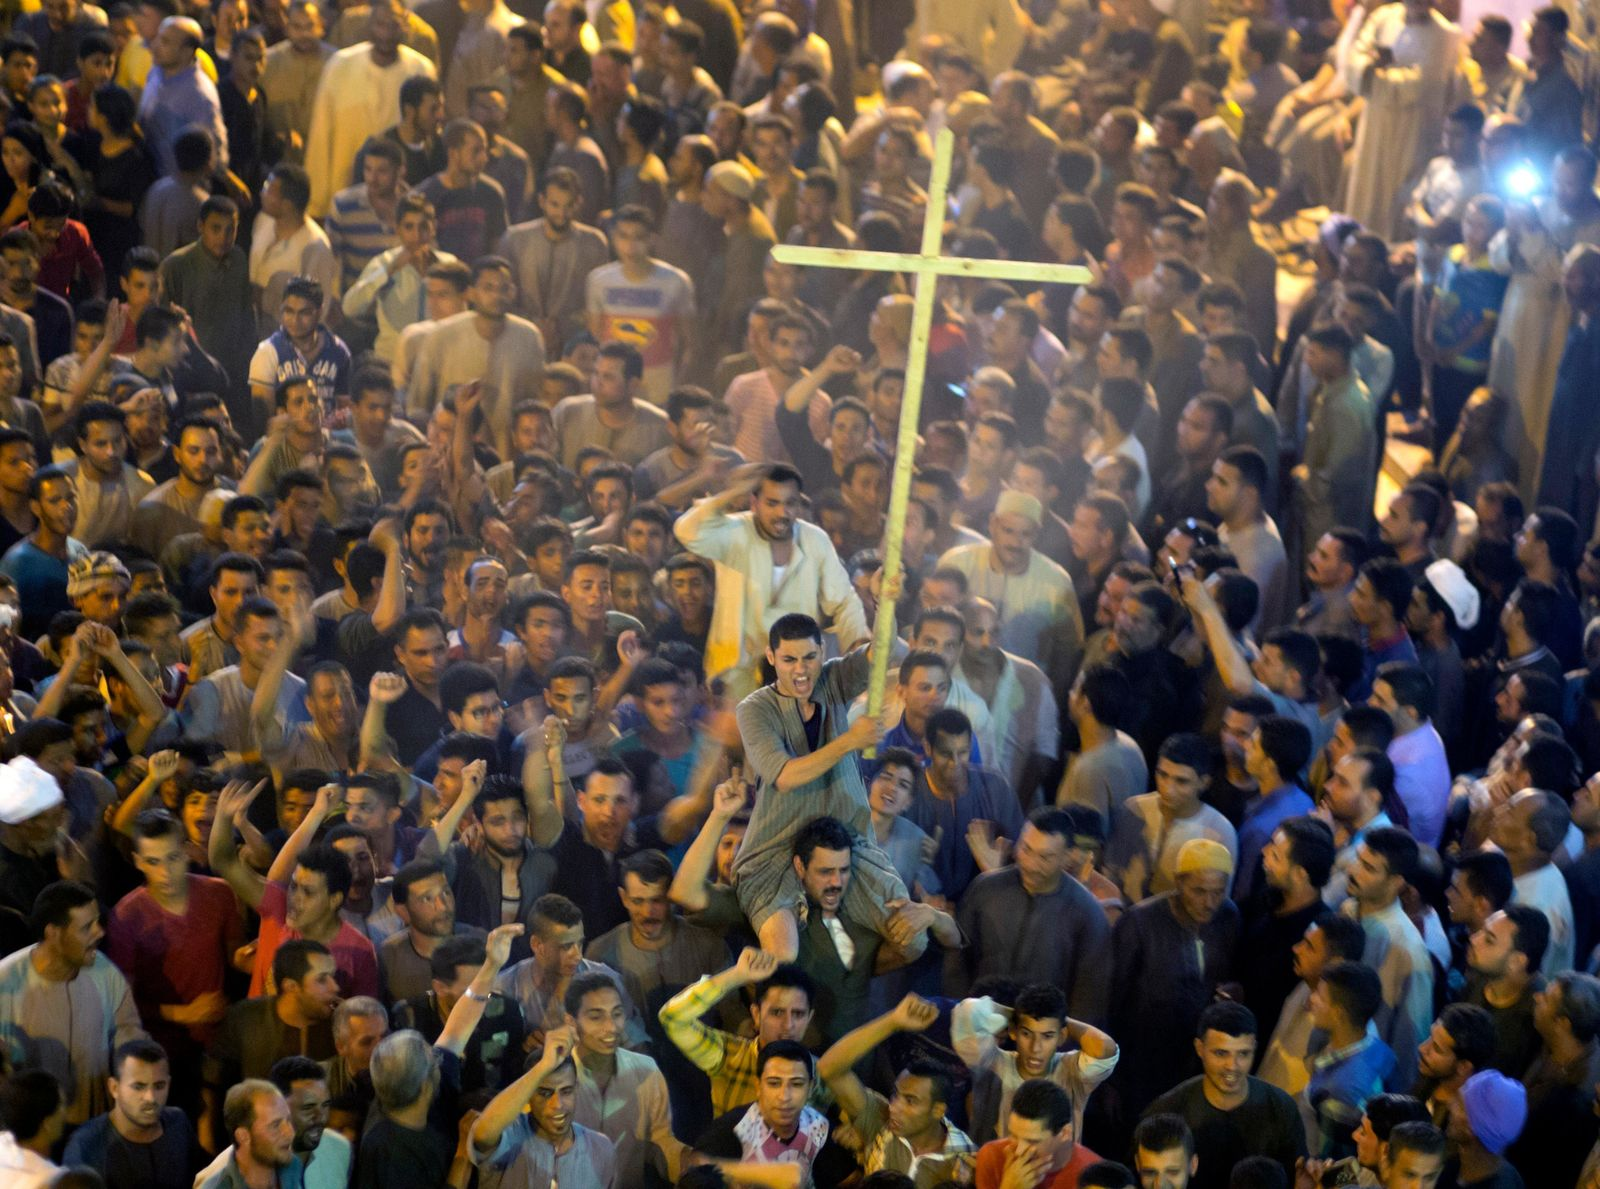 Coptic Christians shout slogans after the funeral service of some of the victims of a bus attack, at Abu Garnous Cathedral in Minya, Egypt, Friday, May 26, 2017. (AP Photo/Amr Nabil)